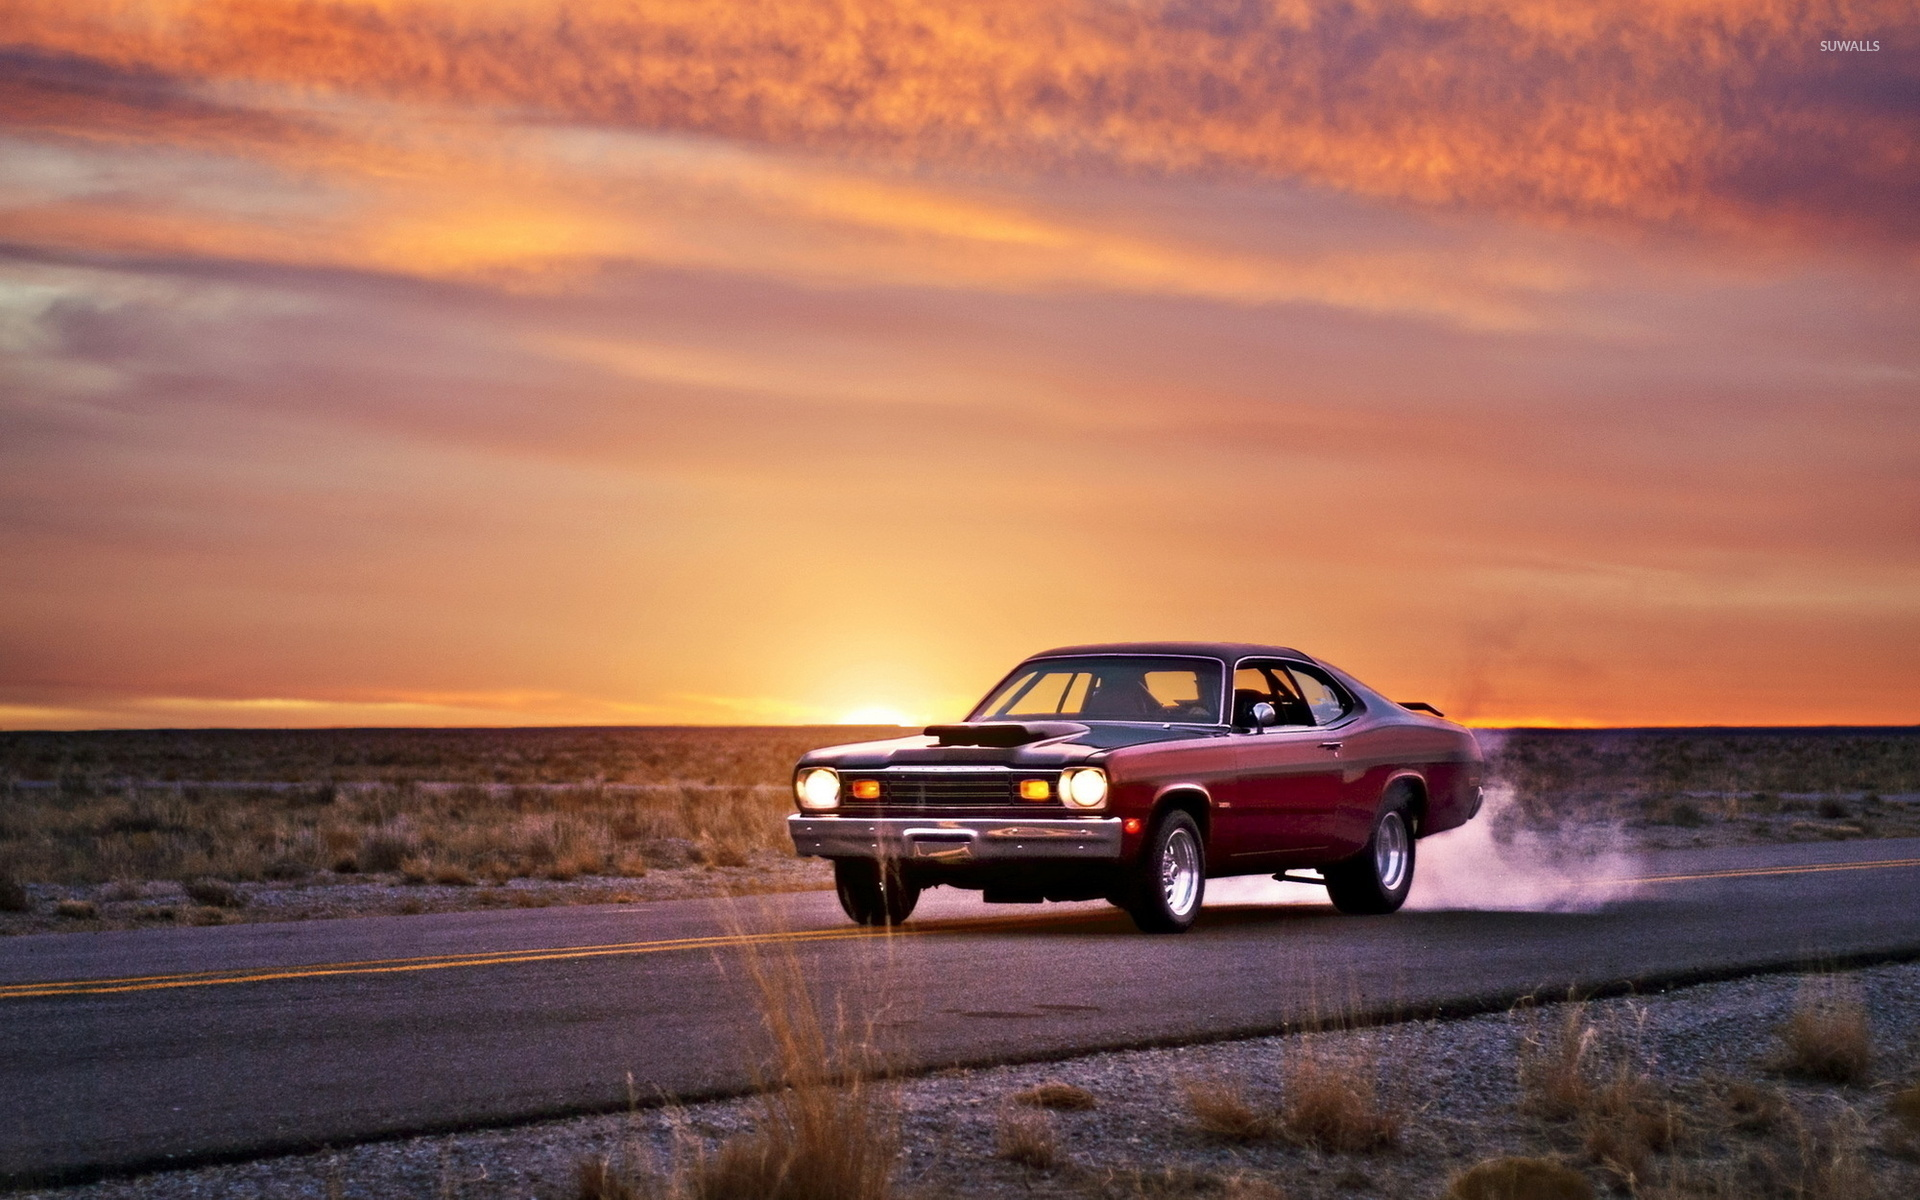 Plymouth Duster On The Road At Sunset Wallpaper